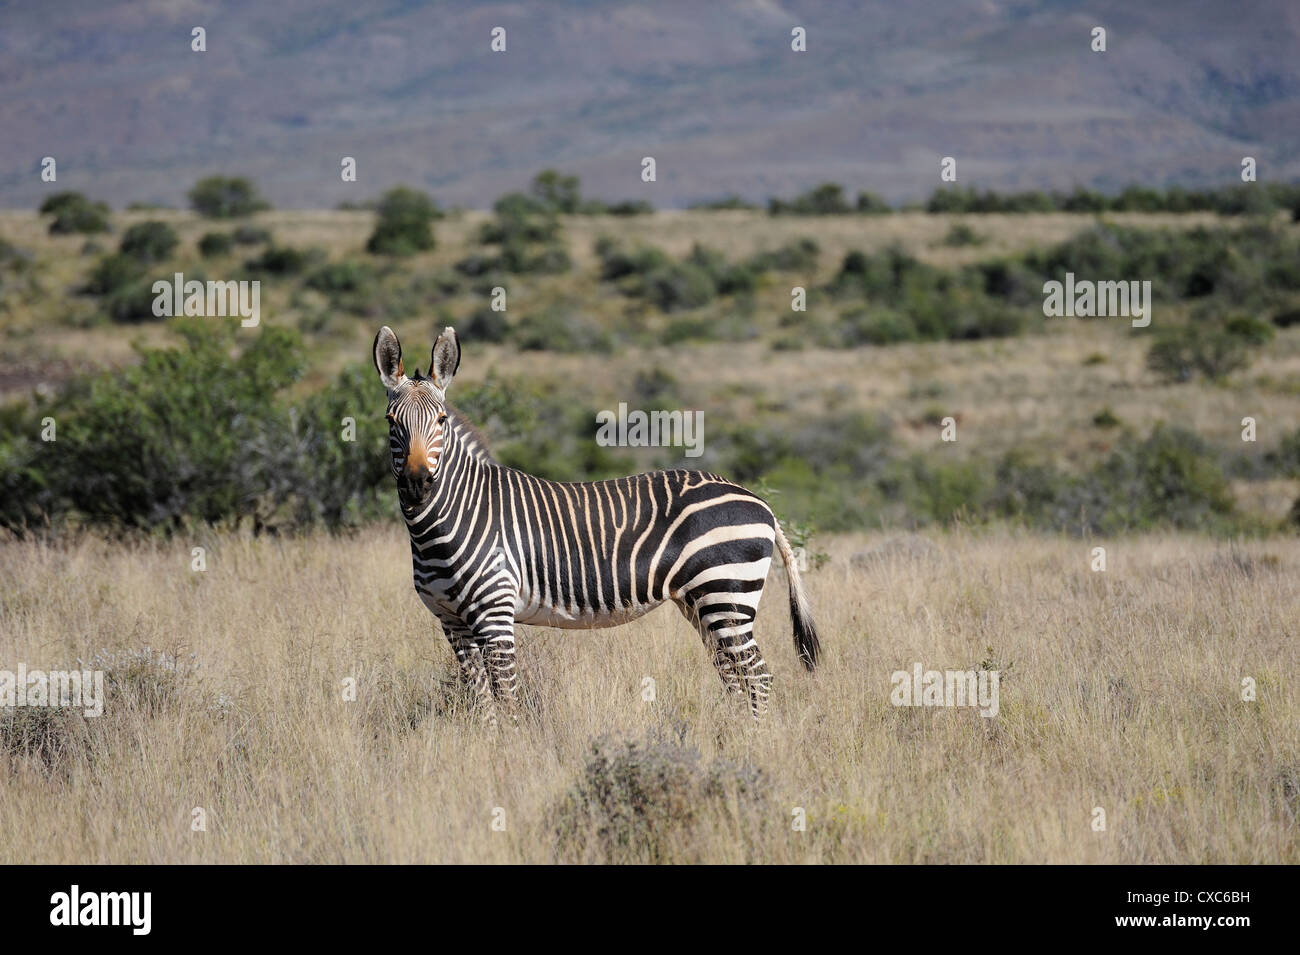 Rare mountain zebra in the early morning in the Karoo National Park, South Africa, Africa - Stock Image